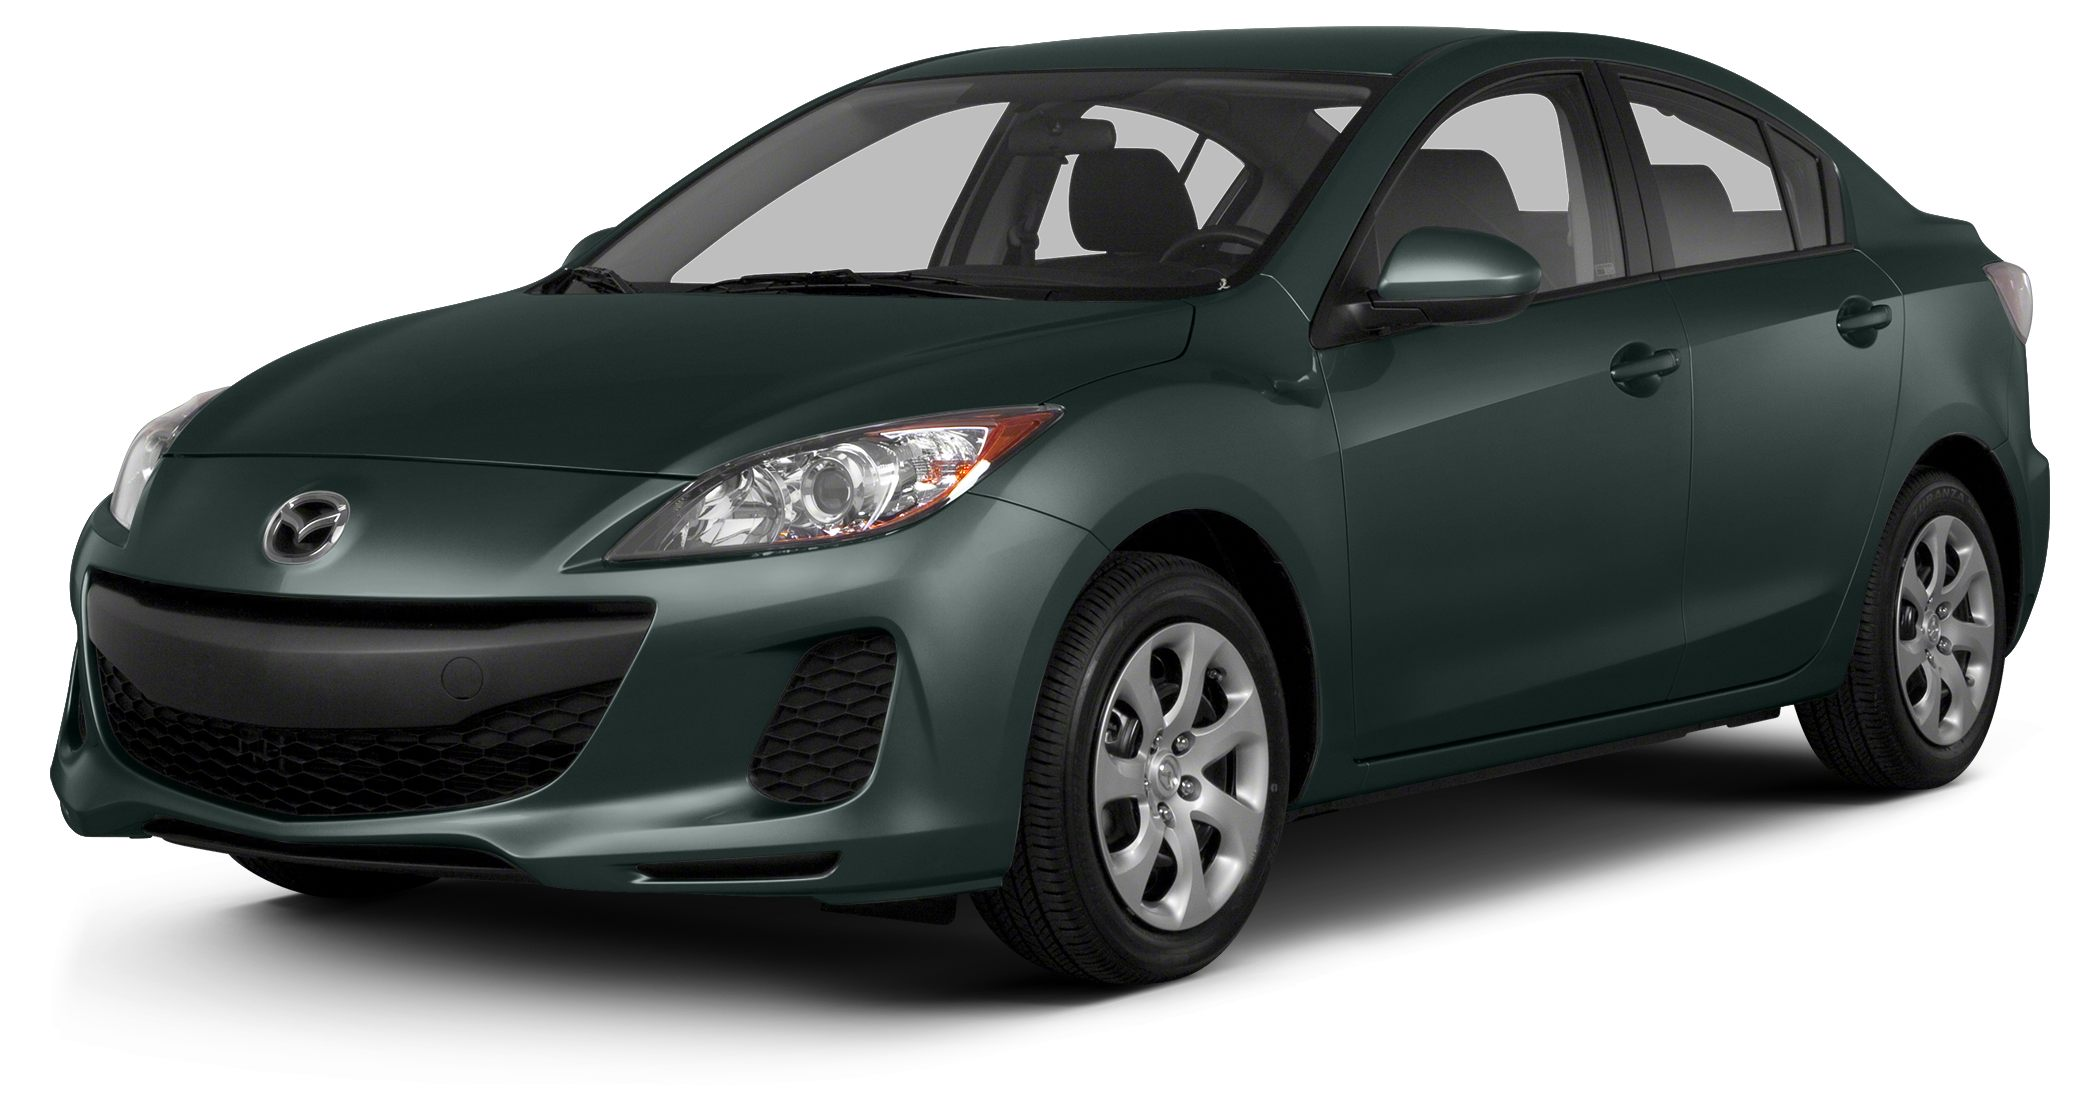 2013 Mazda MAZDA3 i SV Dont miss out on this 2013 Mazda 3 iSV If you want a compact sedan thats